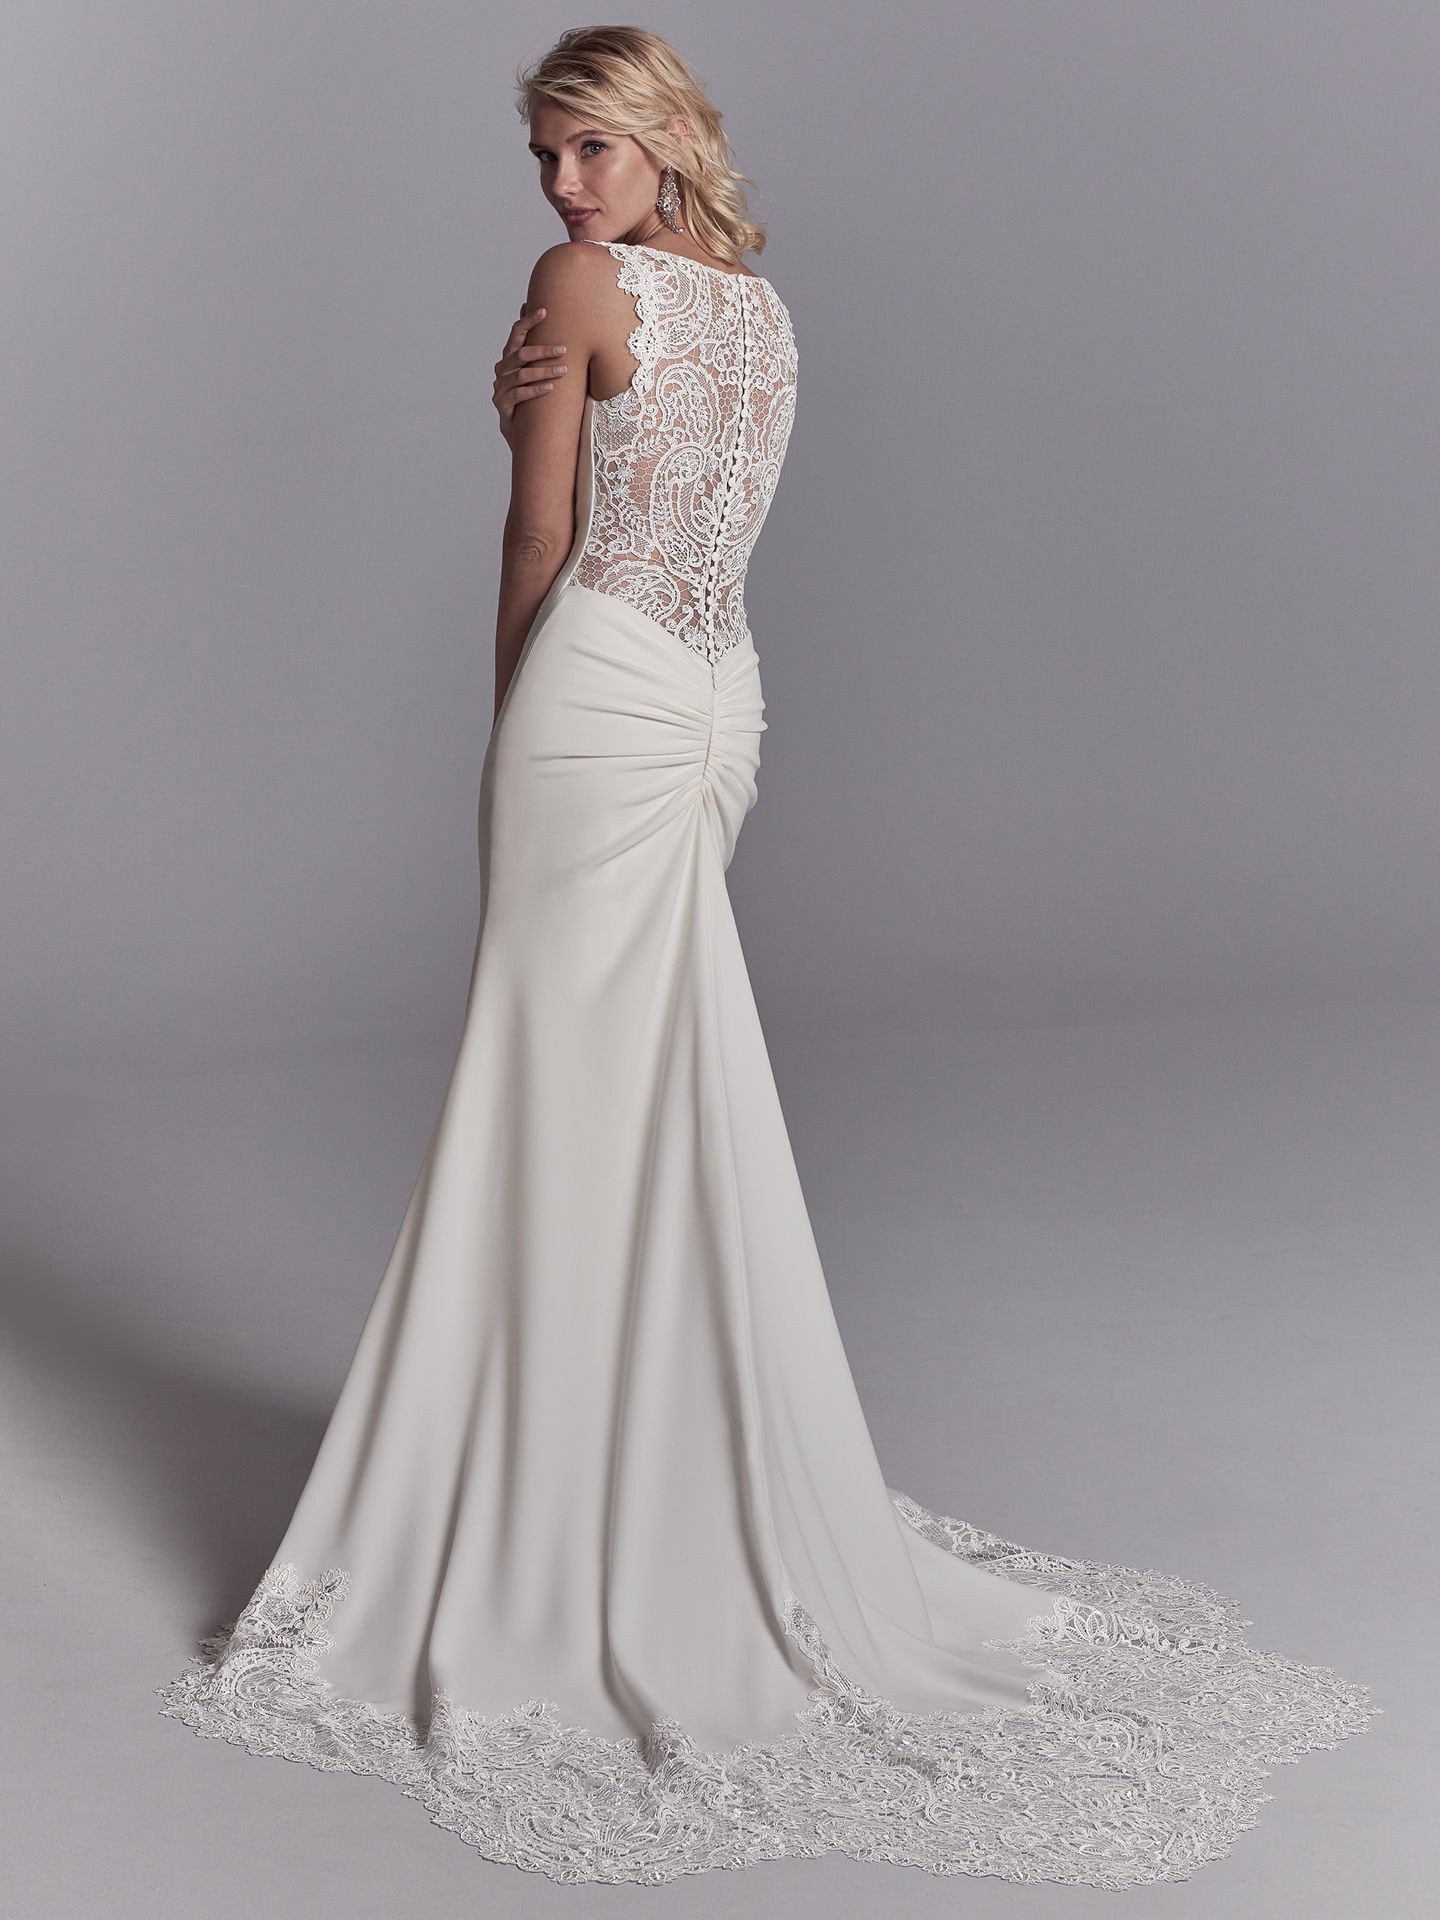 Sottero & Midgley <br> Elliott<br>Size 12 Was £1,700 Now £700